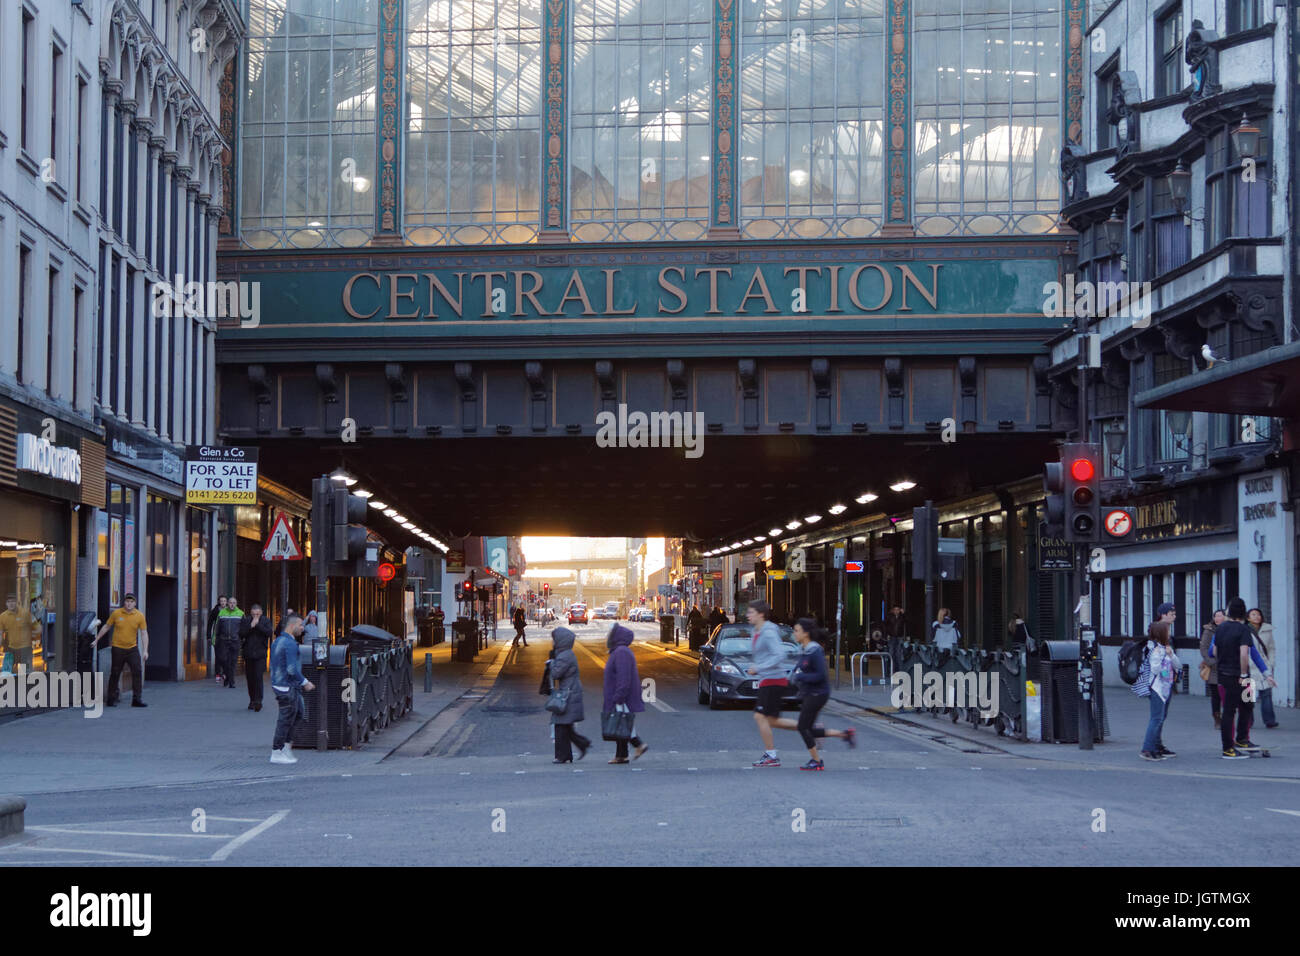 Hielanman's highlander's  Umbrella railway bridge of Glasgow Central station, Argyle Street most polluted - Stock Image